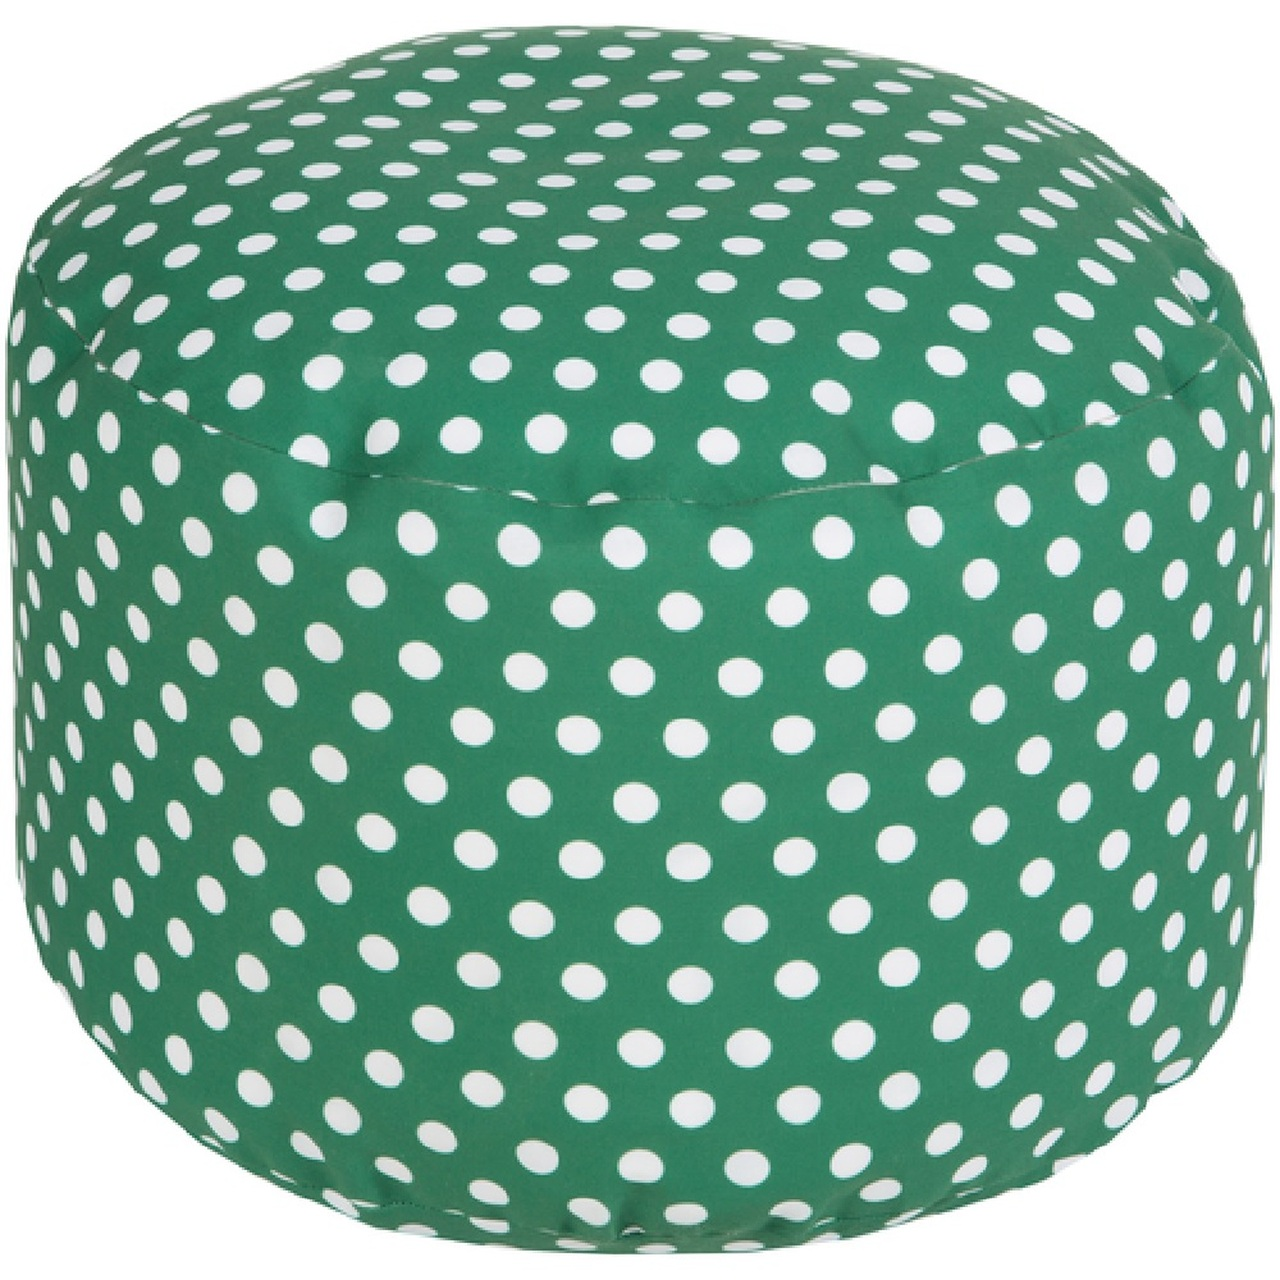 Amazing 20 Emerald Green And Ivory Simply Polka Dot Round Outdoor Patio Pouf Ottoman 31087601 Cjindustries Chair Design For Home Cjindustriesco